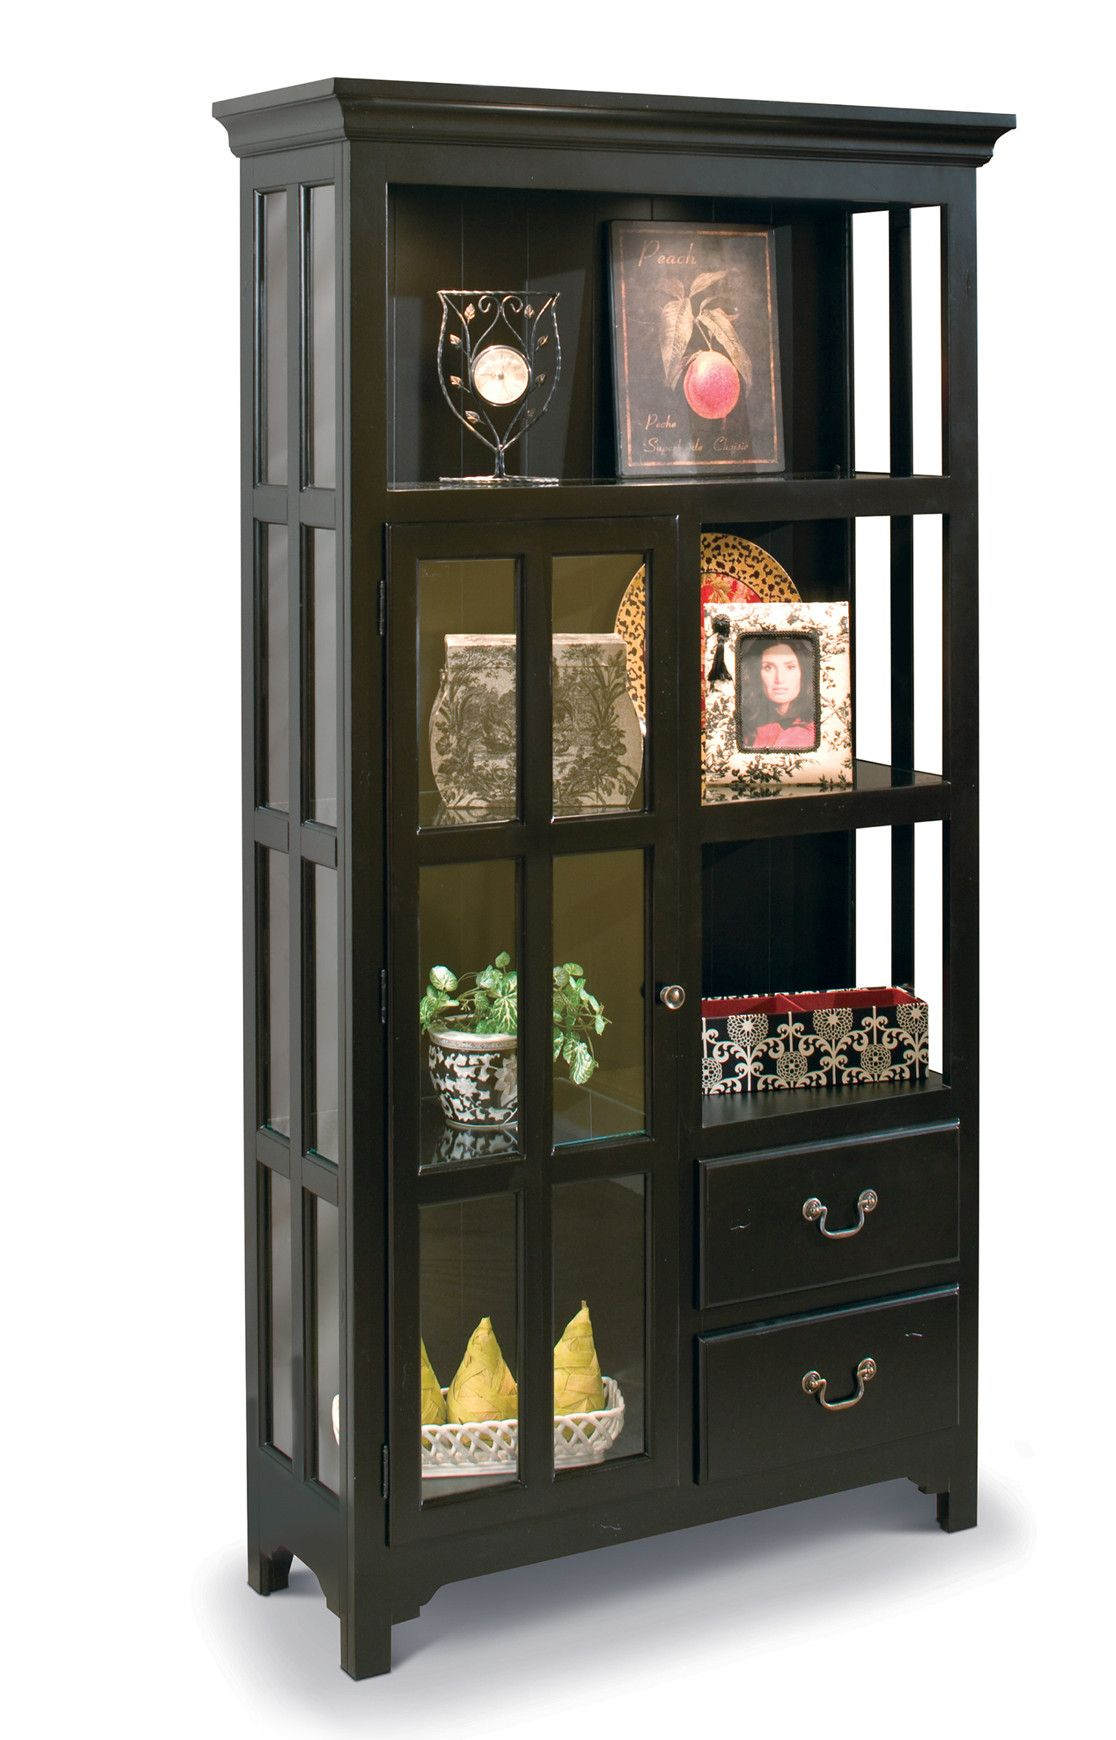 ColorTime Lighted Curio Cabinet